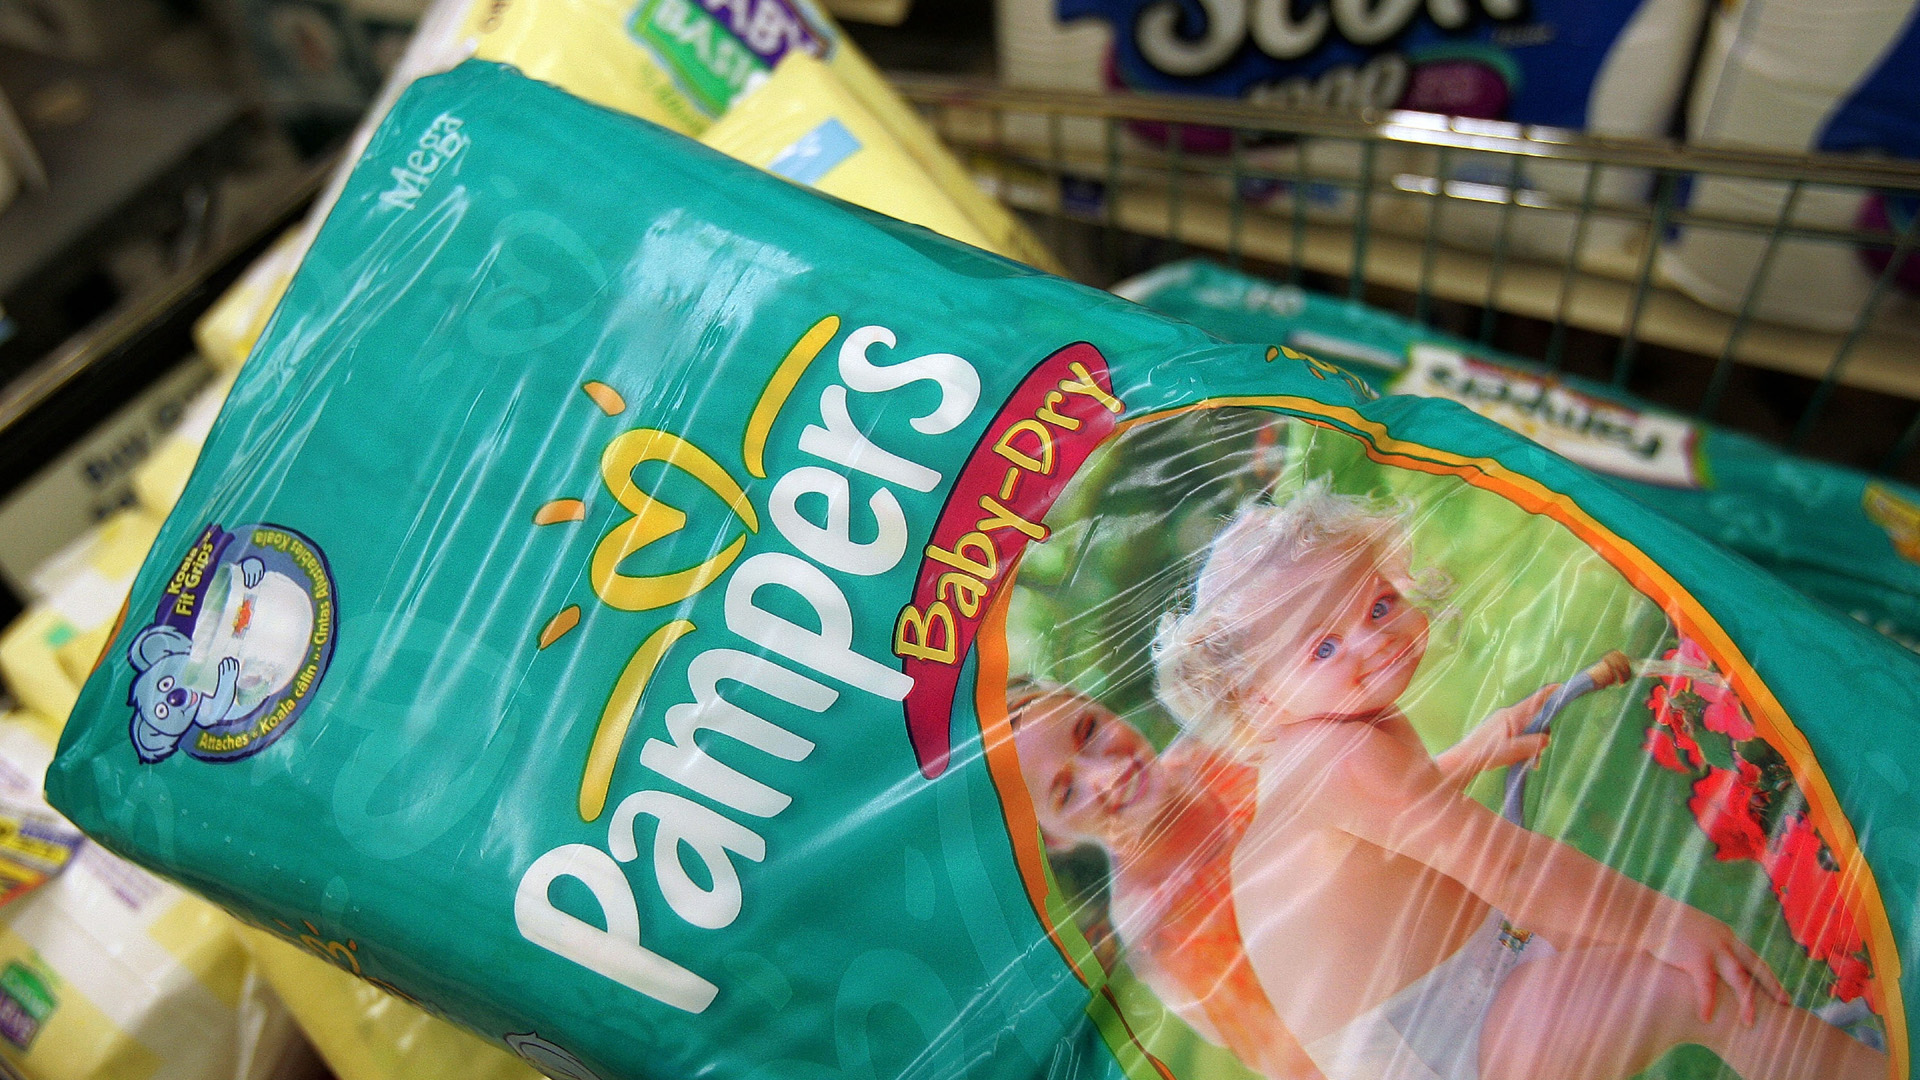 Pampers, diapers, baby, Procter & Gamble41742387-159532